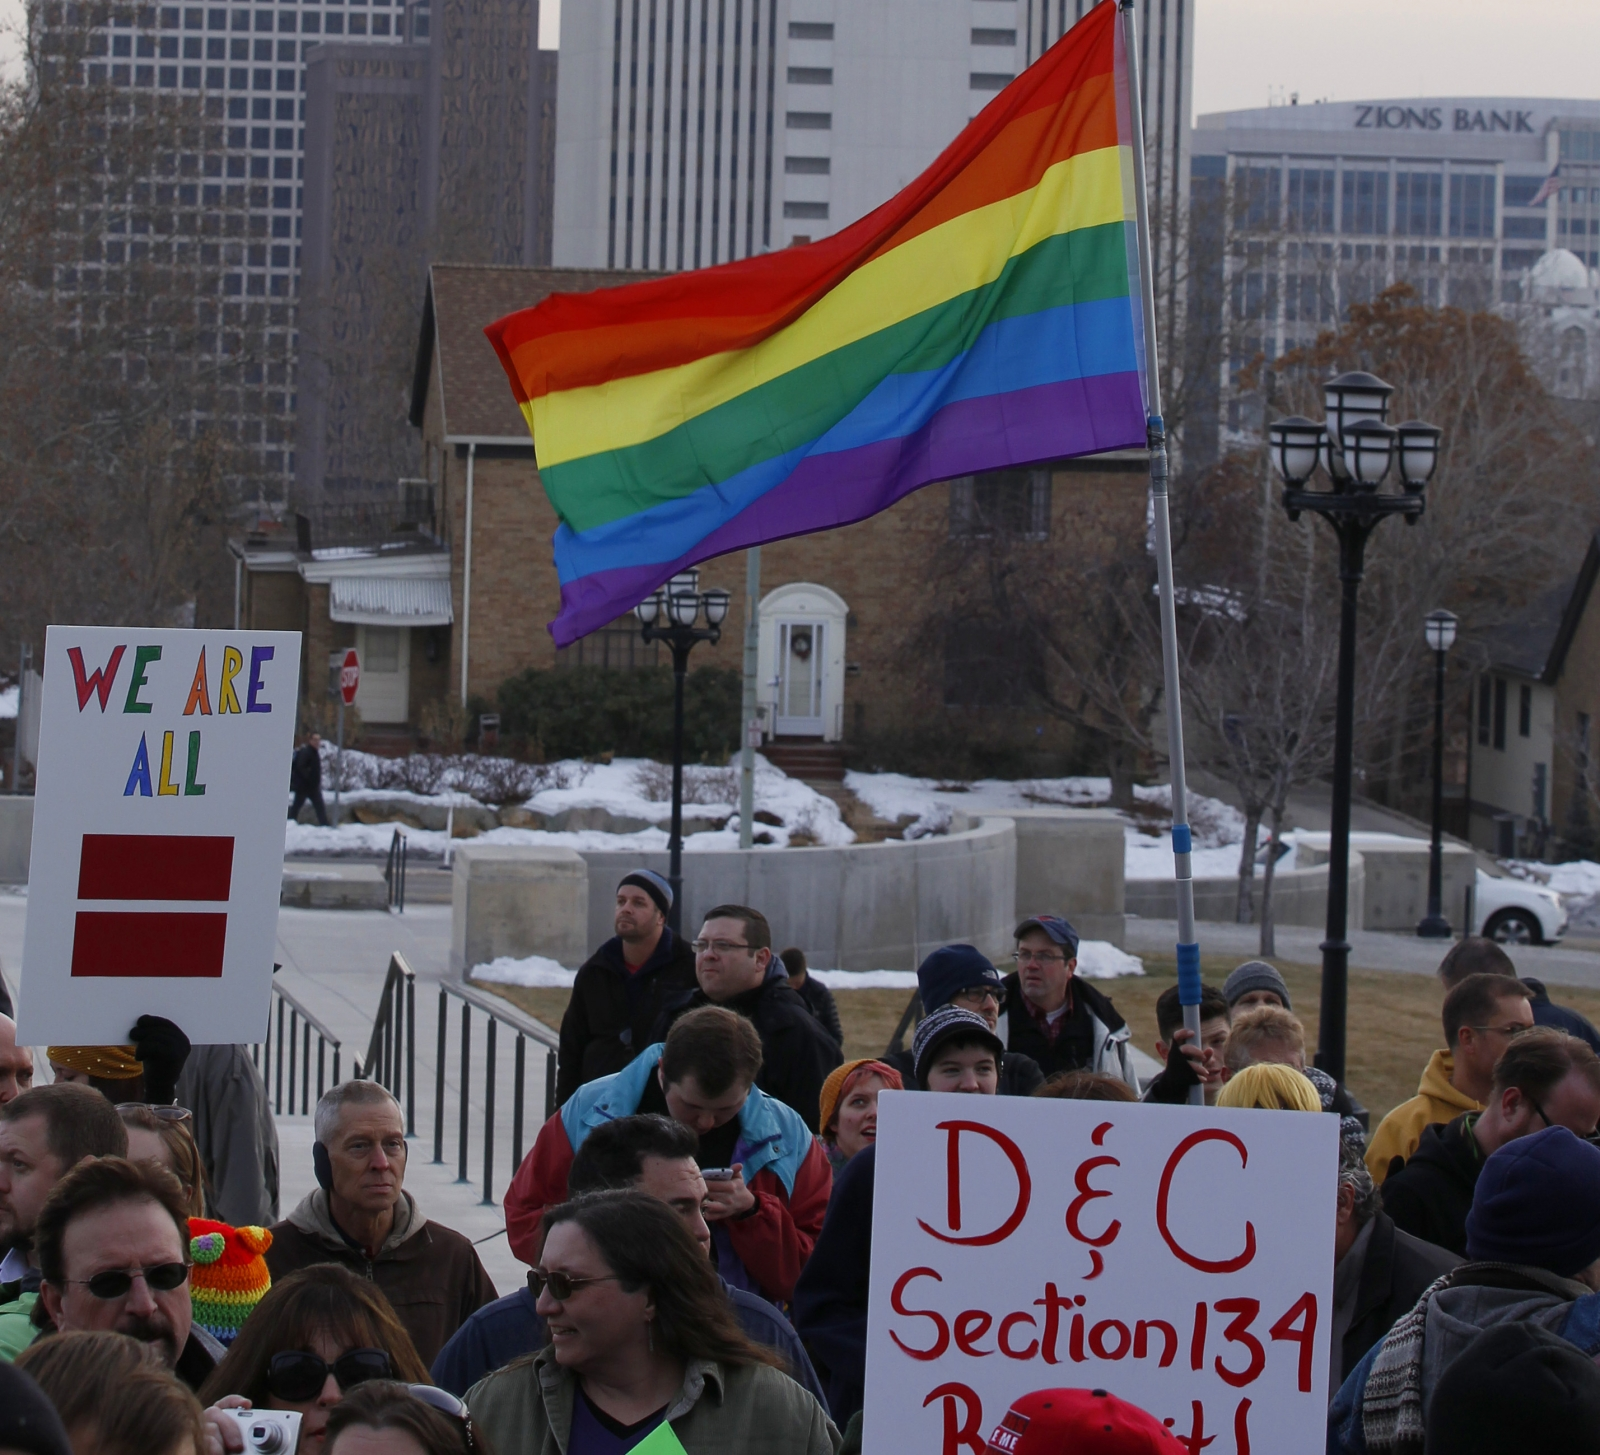 Several hundred people hold a pro-gay marriage rally outside the Utah State Capitol on 28 January 2014 in Salt Lake City, Utah.